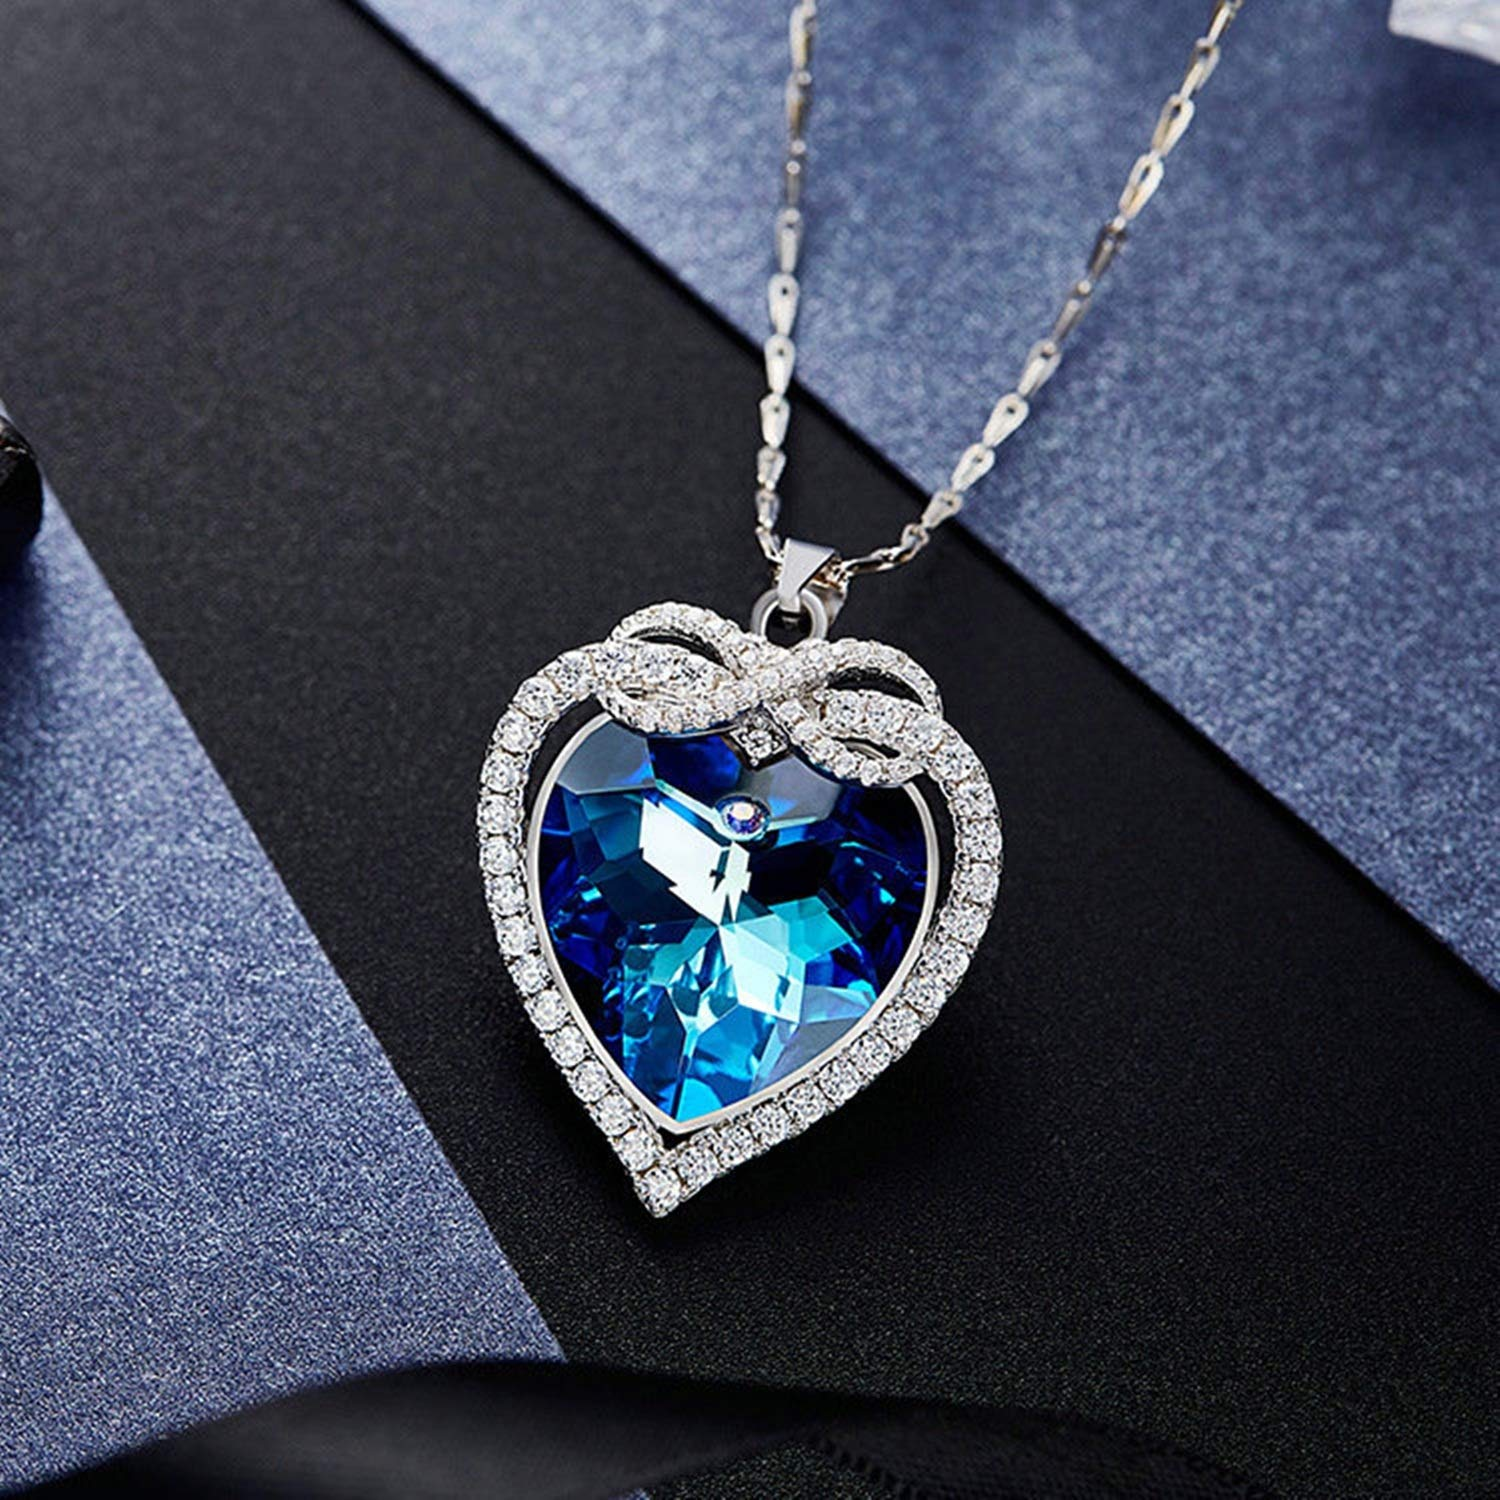 Epinki Shiny Women Necklace Heart Shape Pendant Chain with Blue Cubic Zirconia-A1257